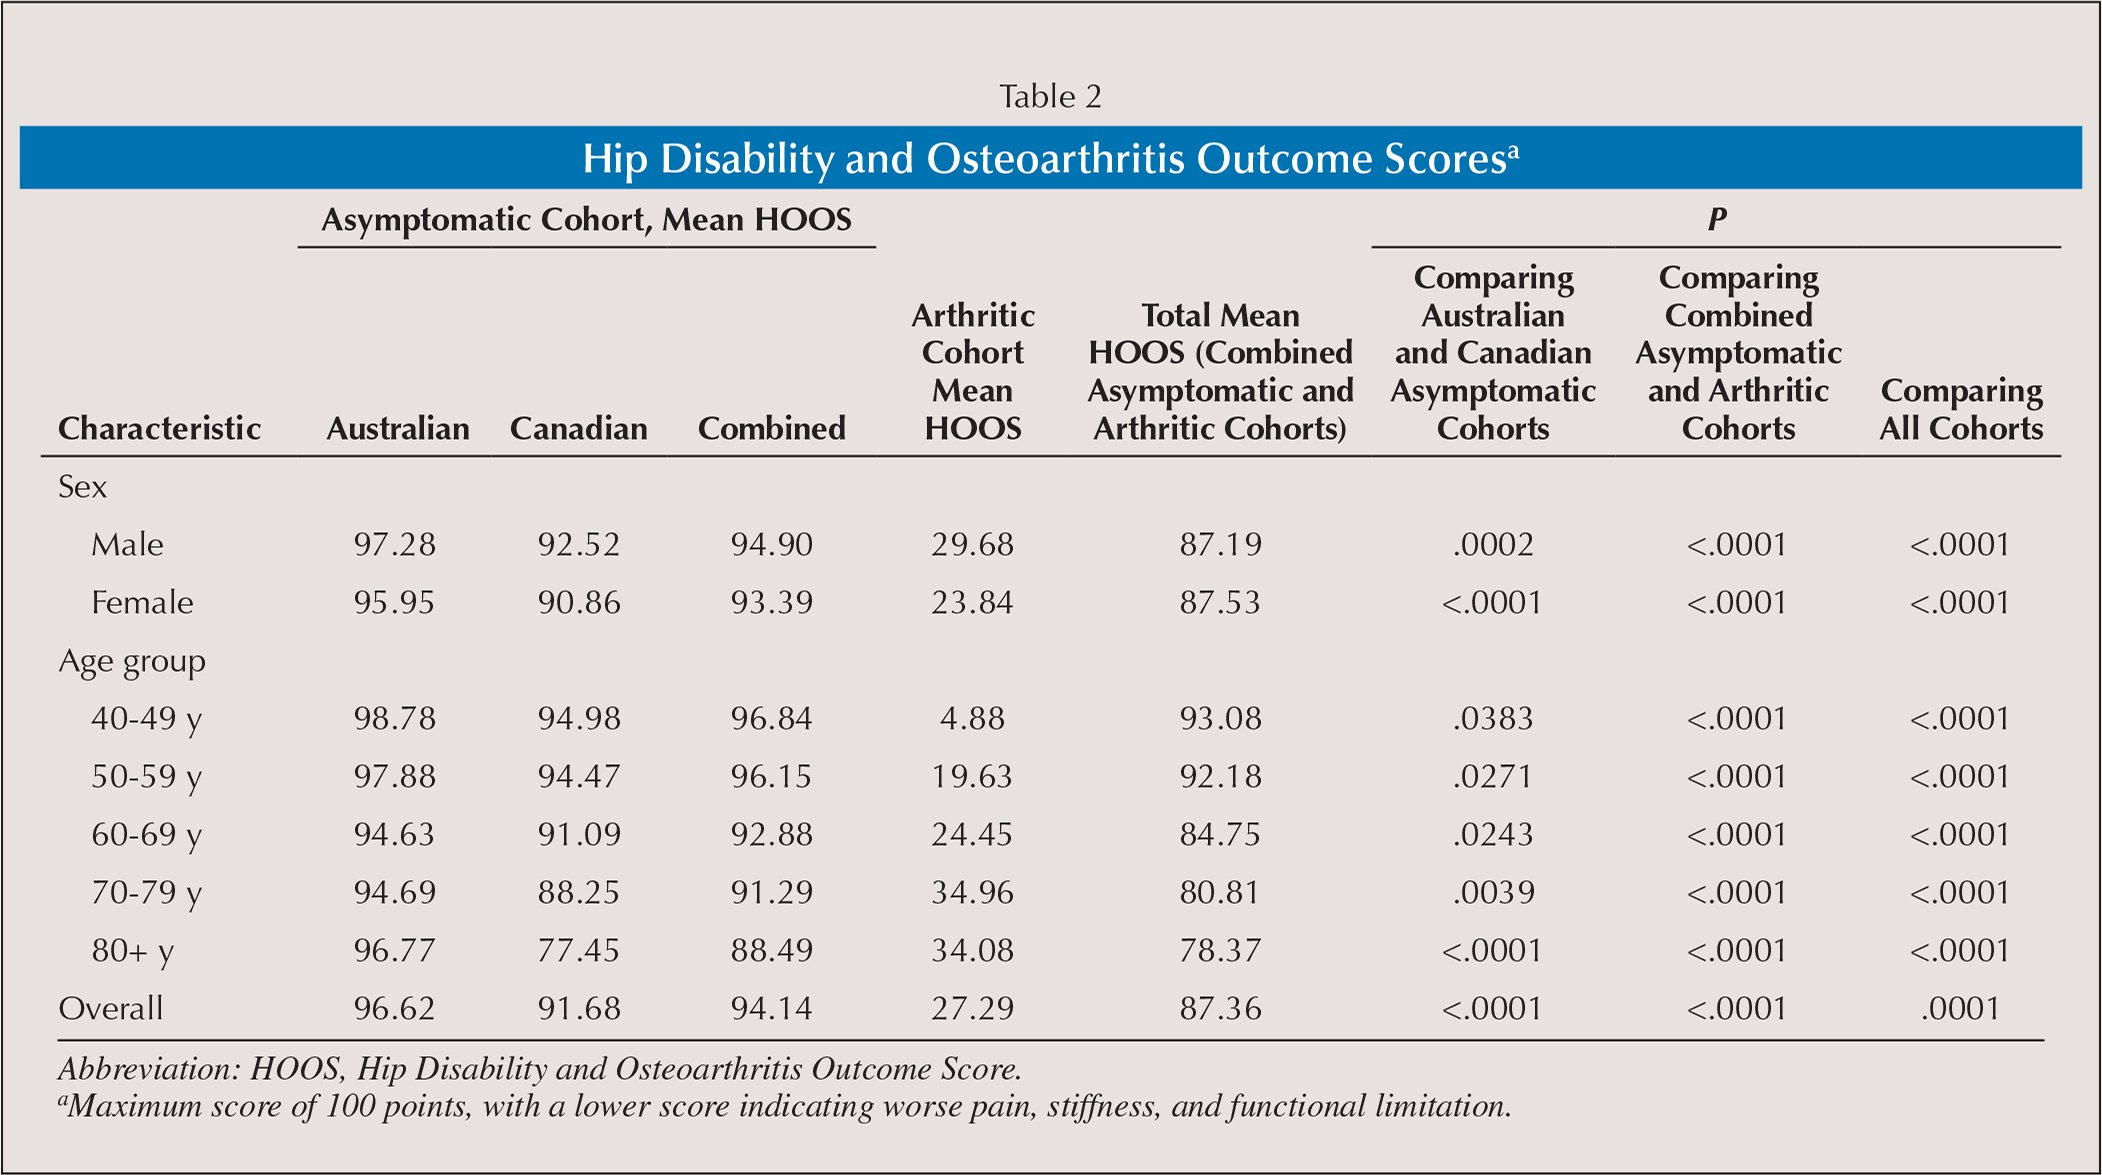 Hip Disability and Osteoarthritis Outcome Scoresa